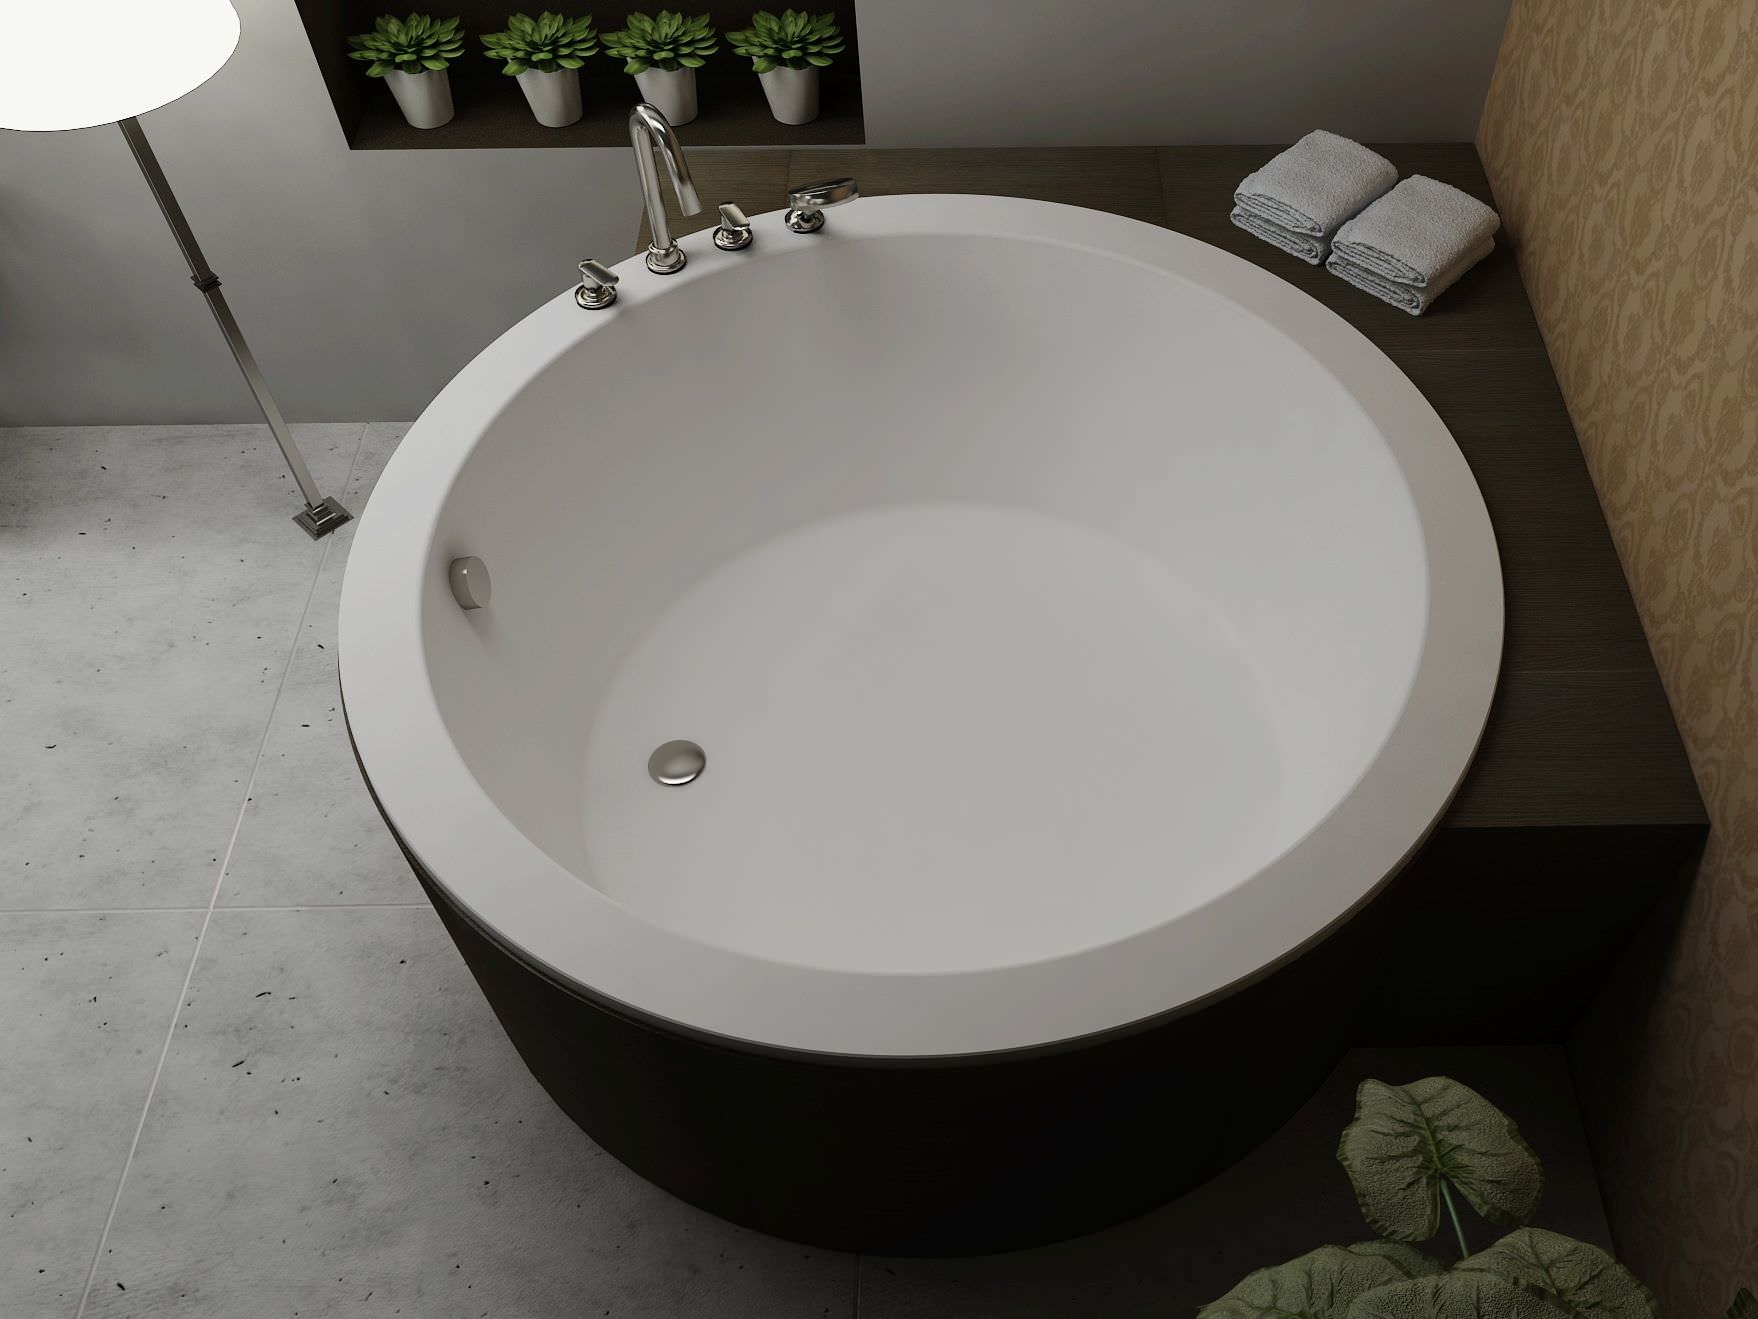 Freestanding bathtub / round / Solid Surface - BS-S35 - Bella ...